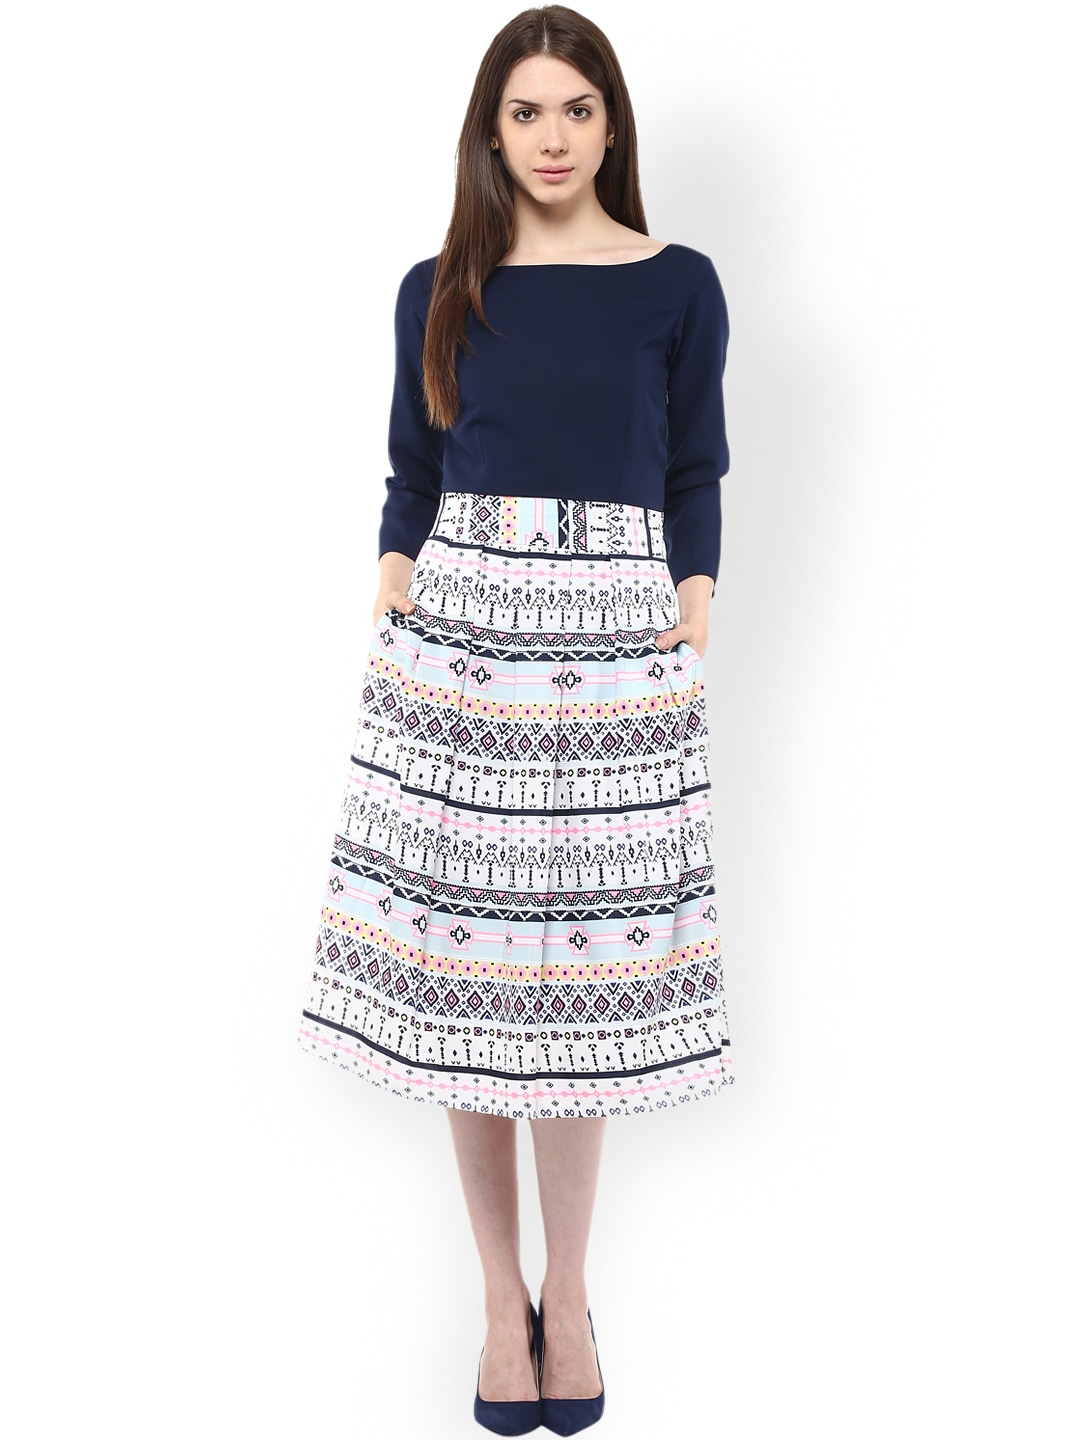 Dresses for Women - Buy Ladies Dresses Online in India - Myntra